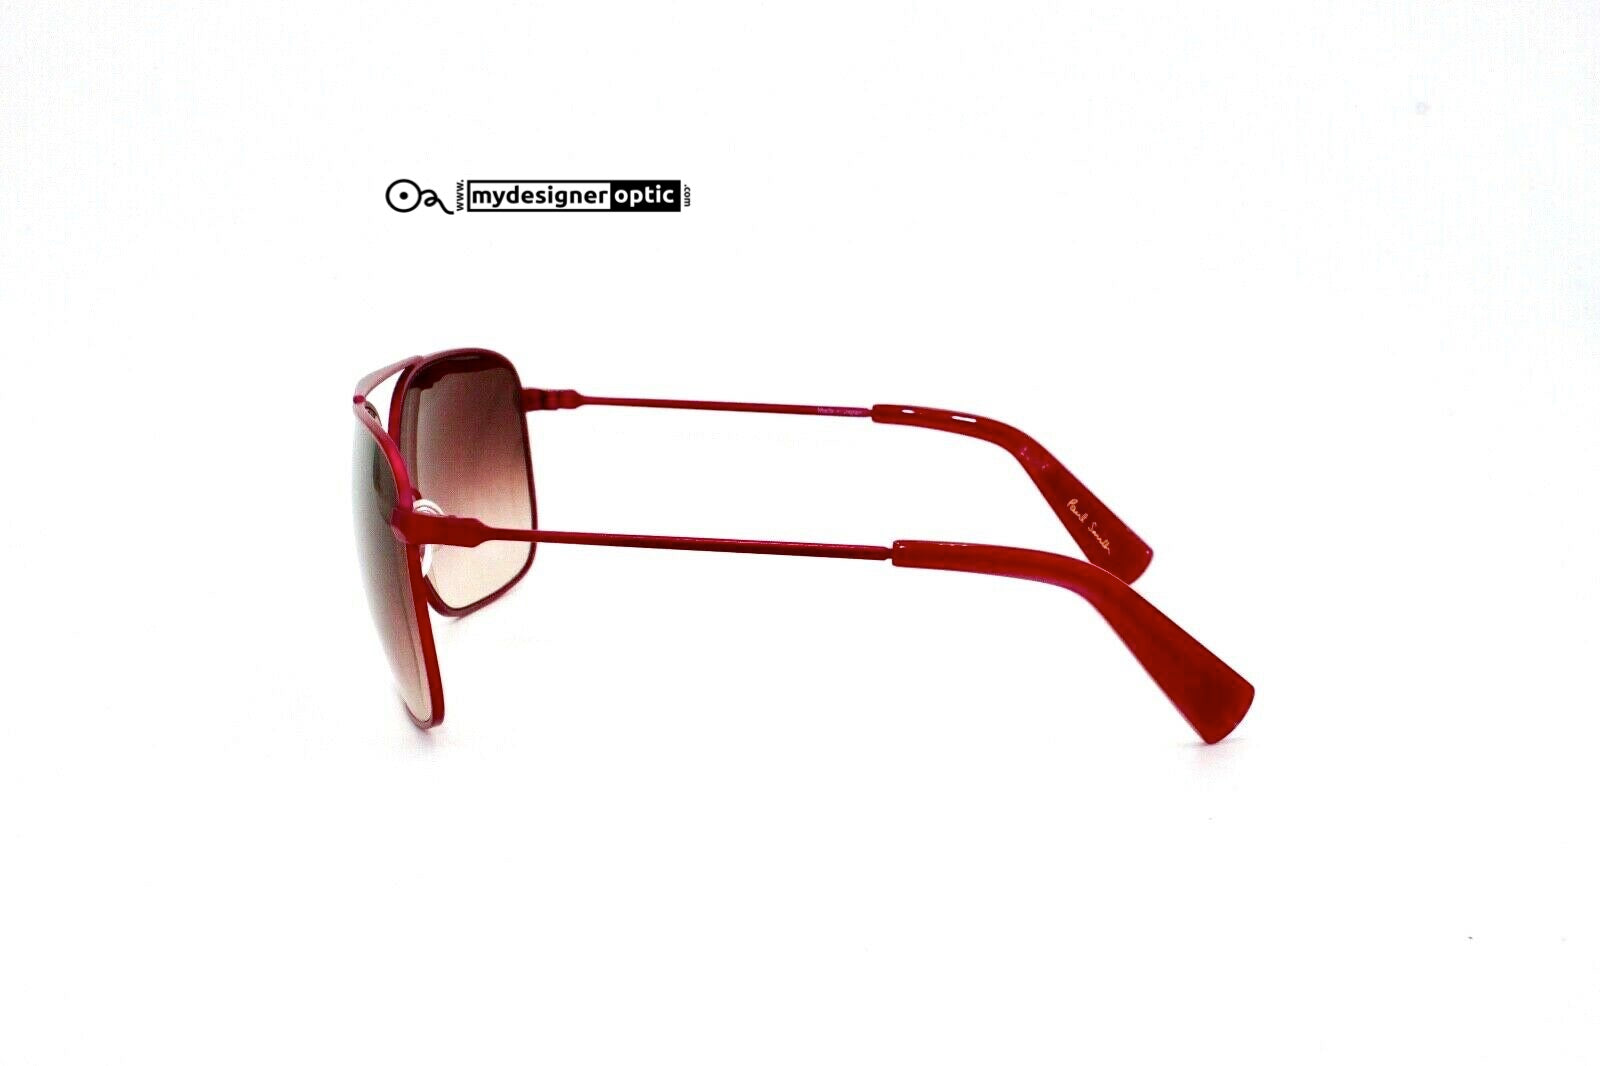 Paul Smith Sunglasses 63-14-135 PS-835 ELM Made in Japan (Real Dead Stock) - Mydesigneroptic